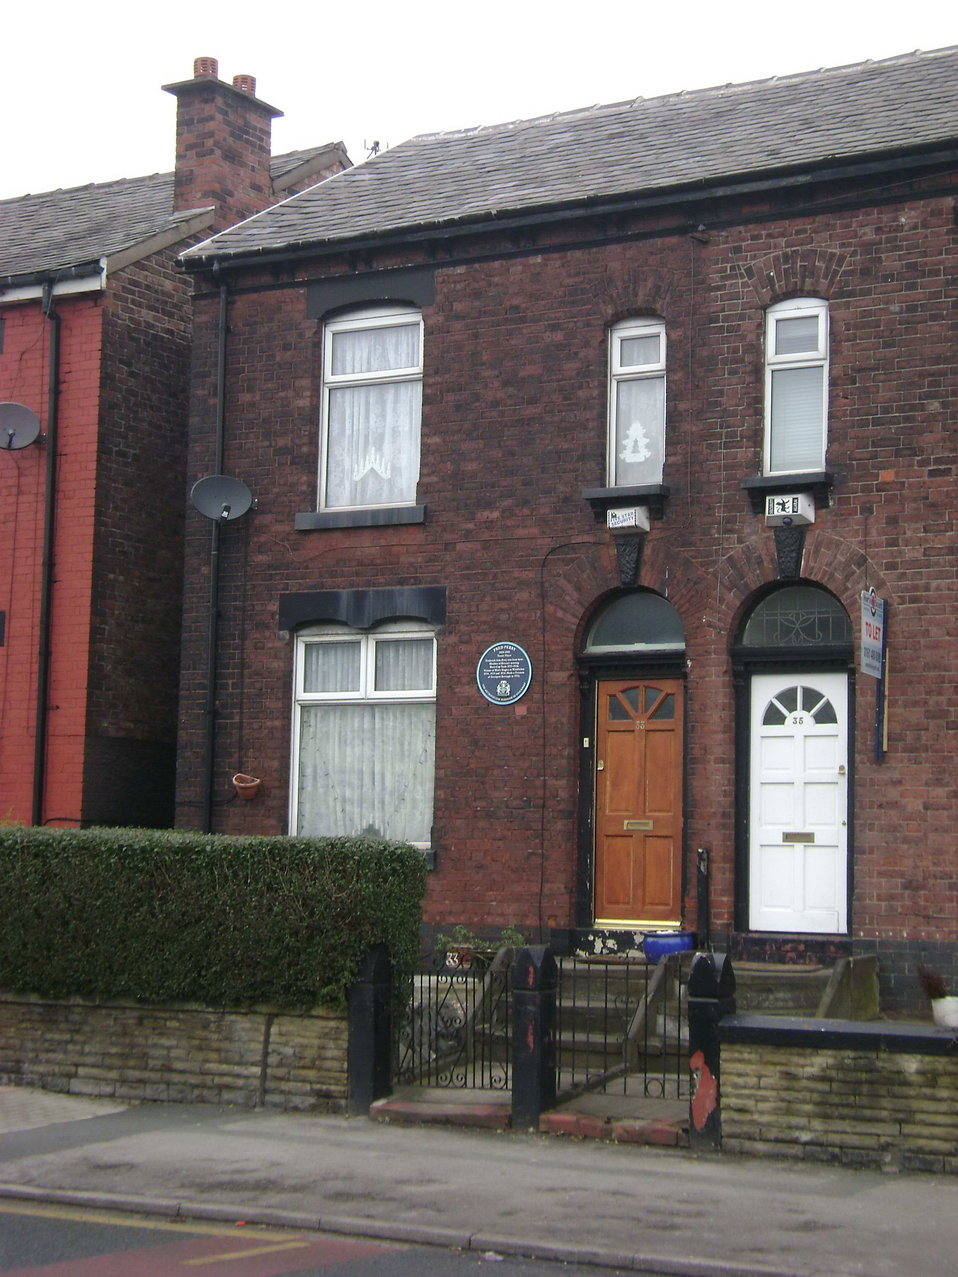 The house where Fred Perry was born, Stockport.